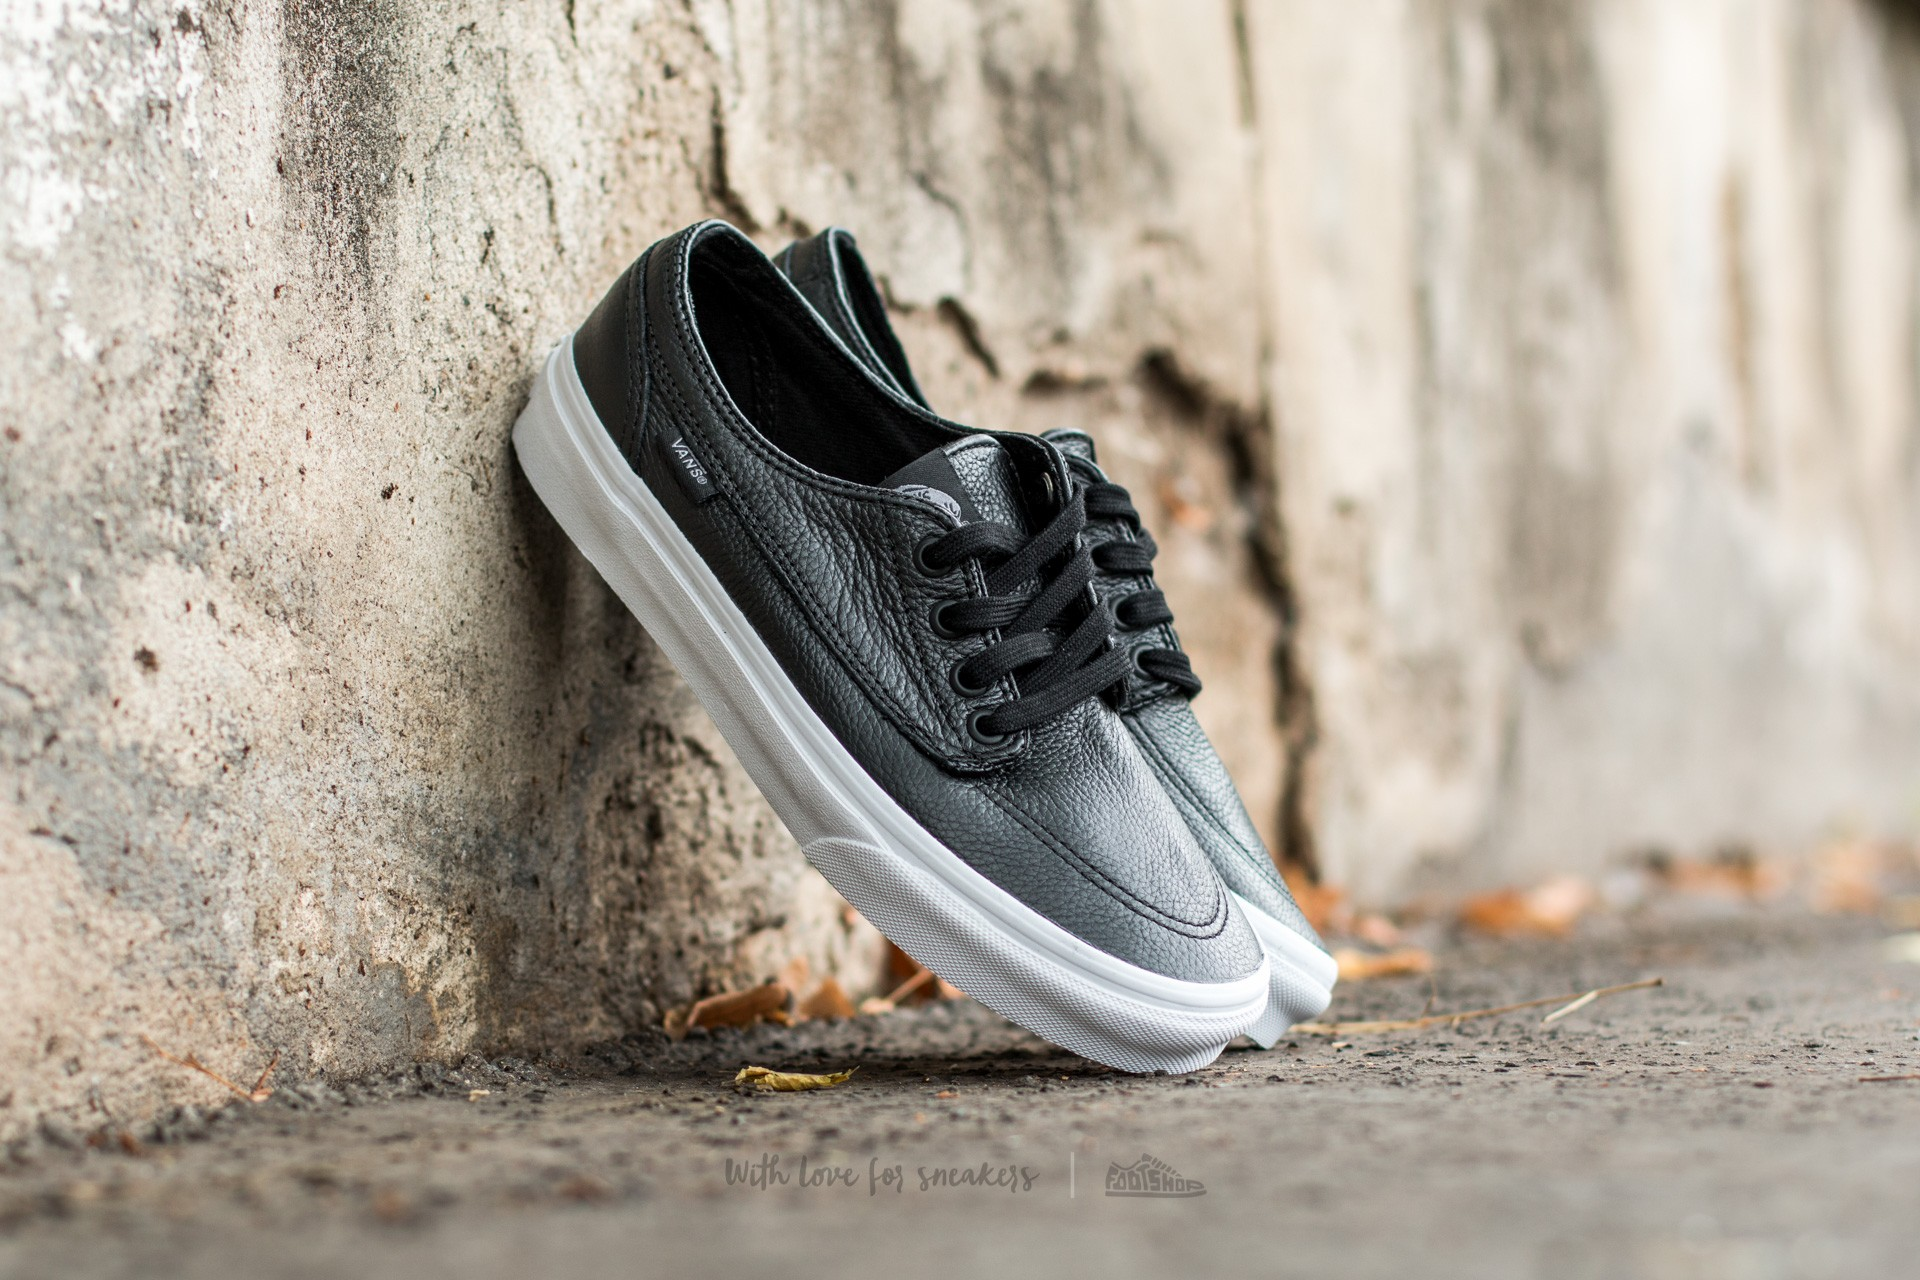 Vans Brigata (Premium Leather) Black/ True White